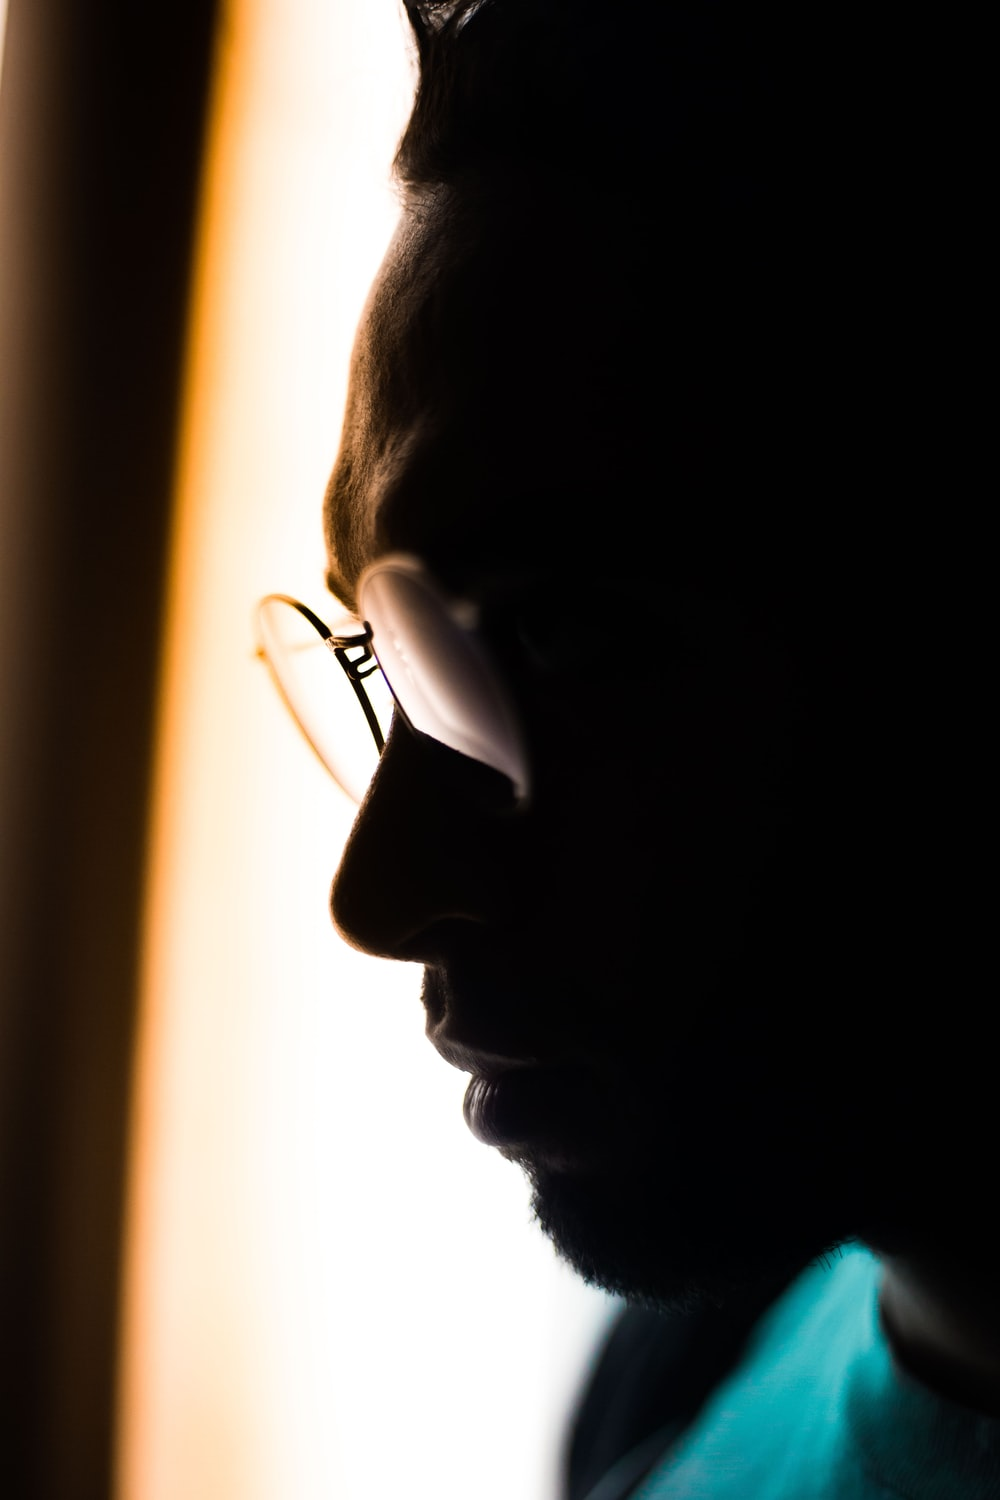 man wearing eyeglasses and teal crew-neck tops in close-up photography